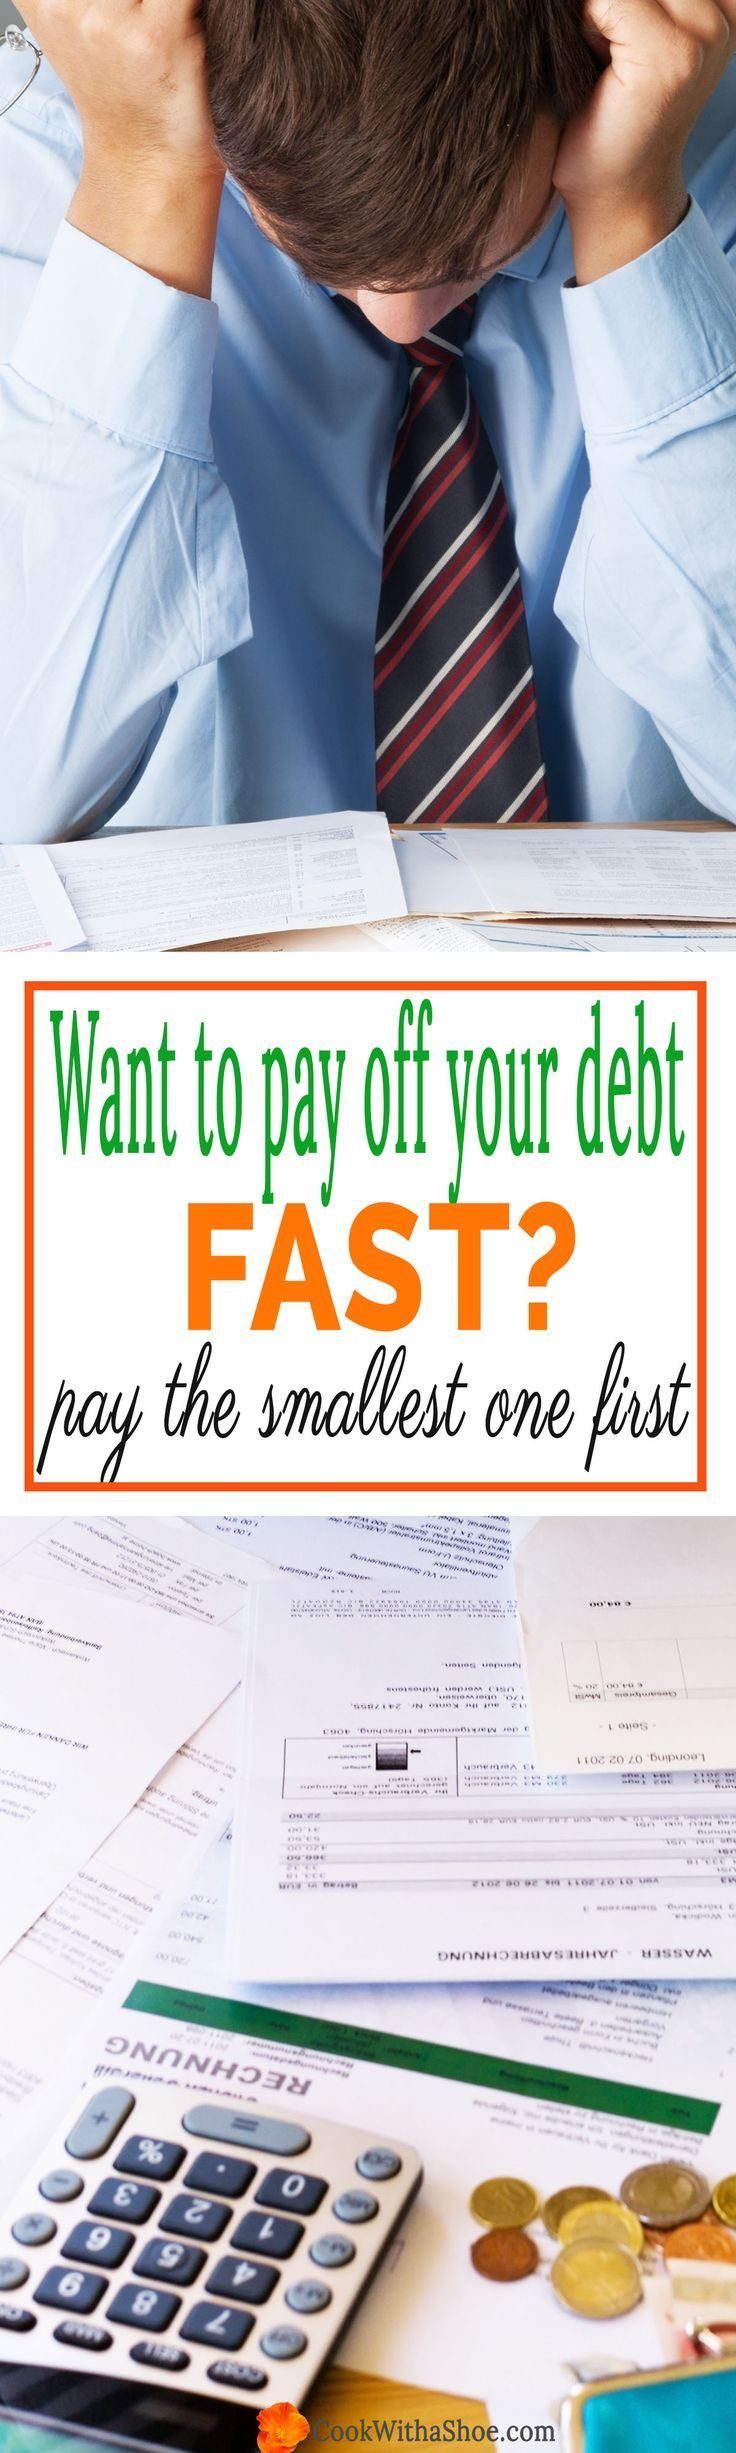 how to pay off debt fast | debt snowball | which debt do I pay first | highest interest debt vs smallest debt first | debt free | paying off debt | pay off debt fast | budgeting | Cook With a Shoe